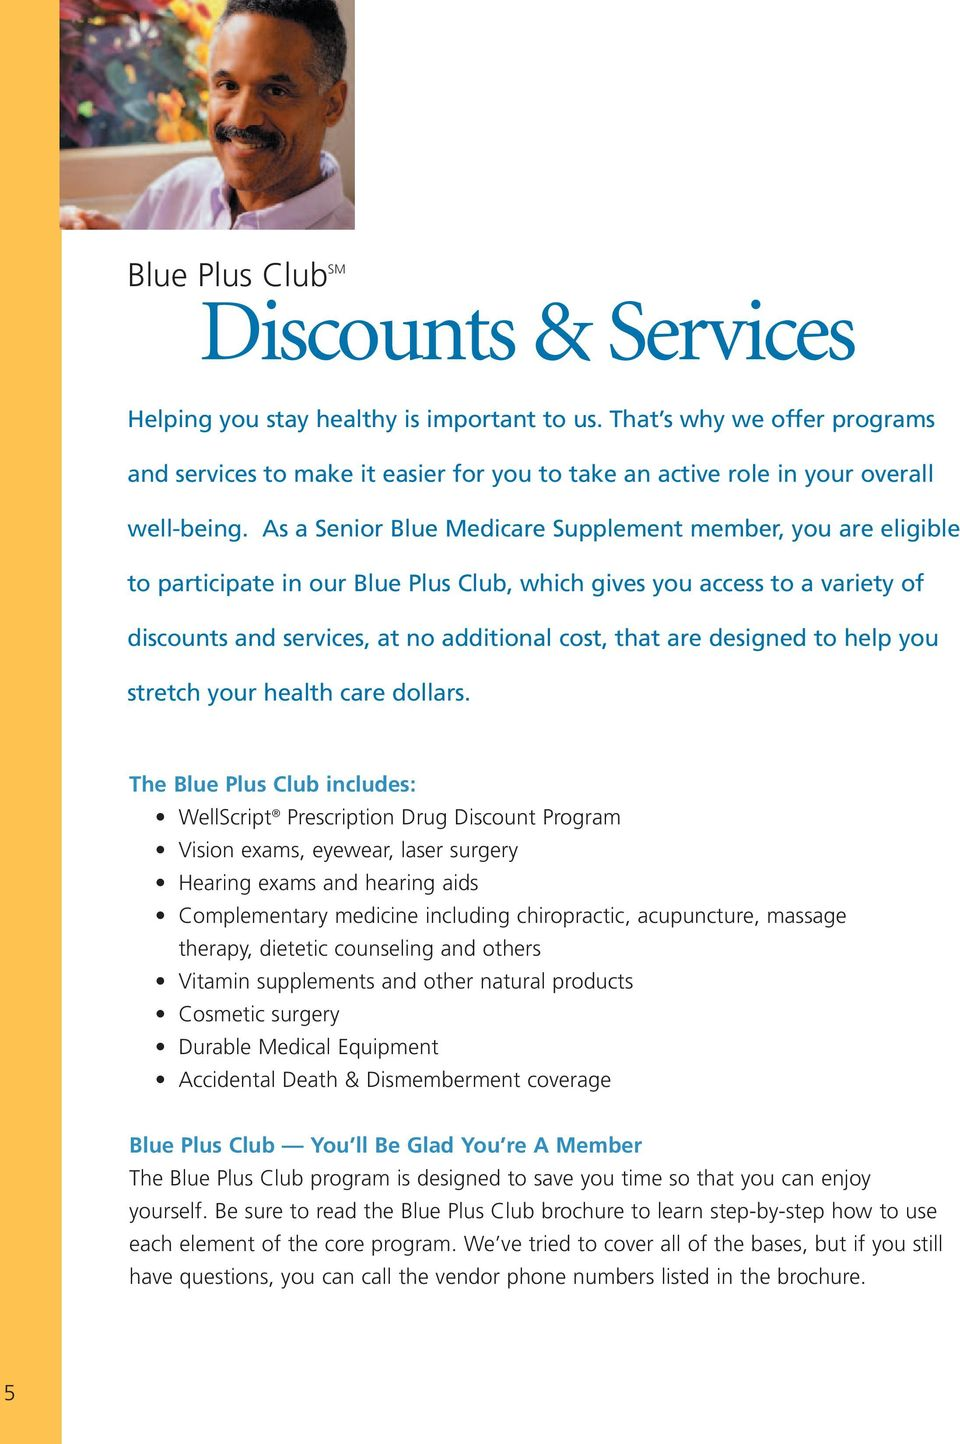 As a Senior Blue Medicare Supplement member, you are eligible to participate in our Blue Plus Club, which gives you access to a variety of discounts and services, at no additional cost, that are